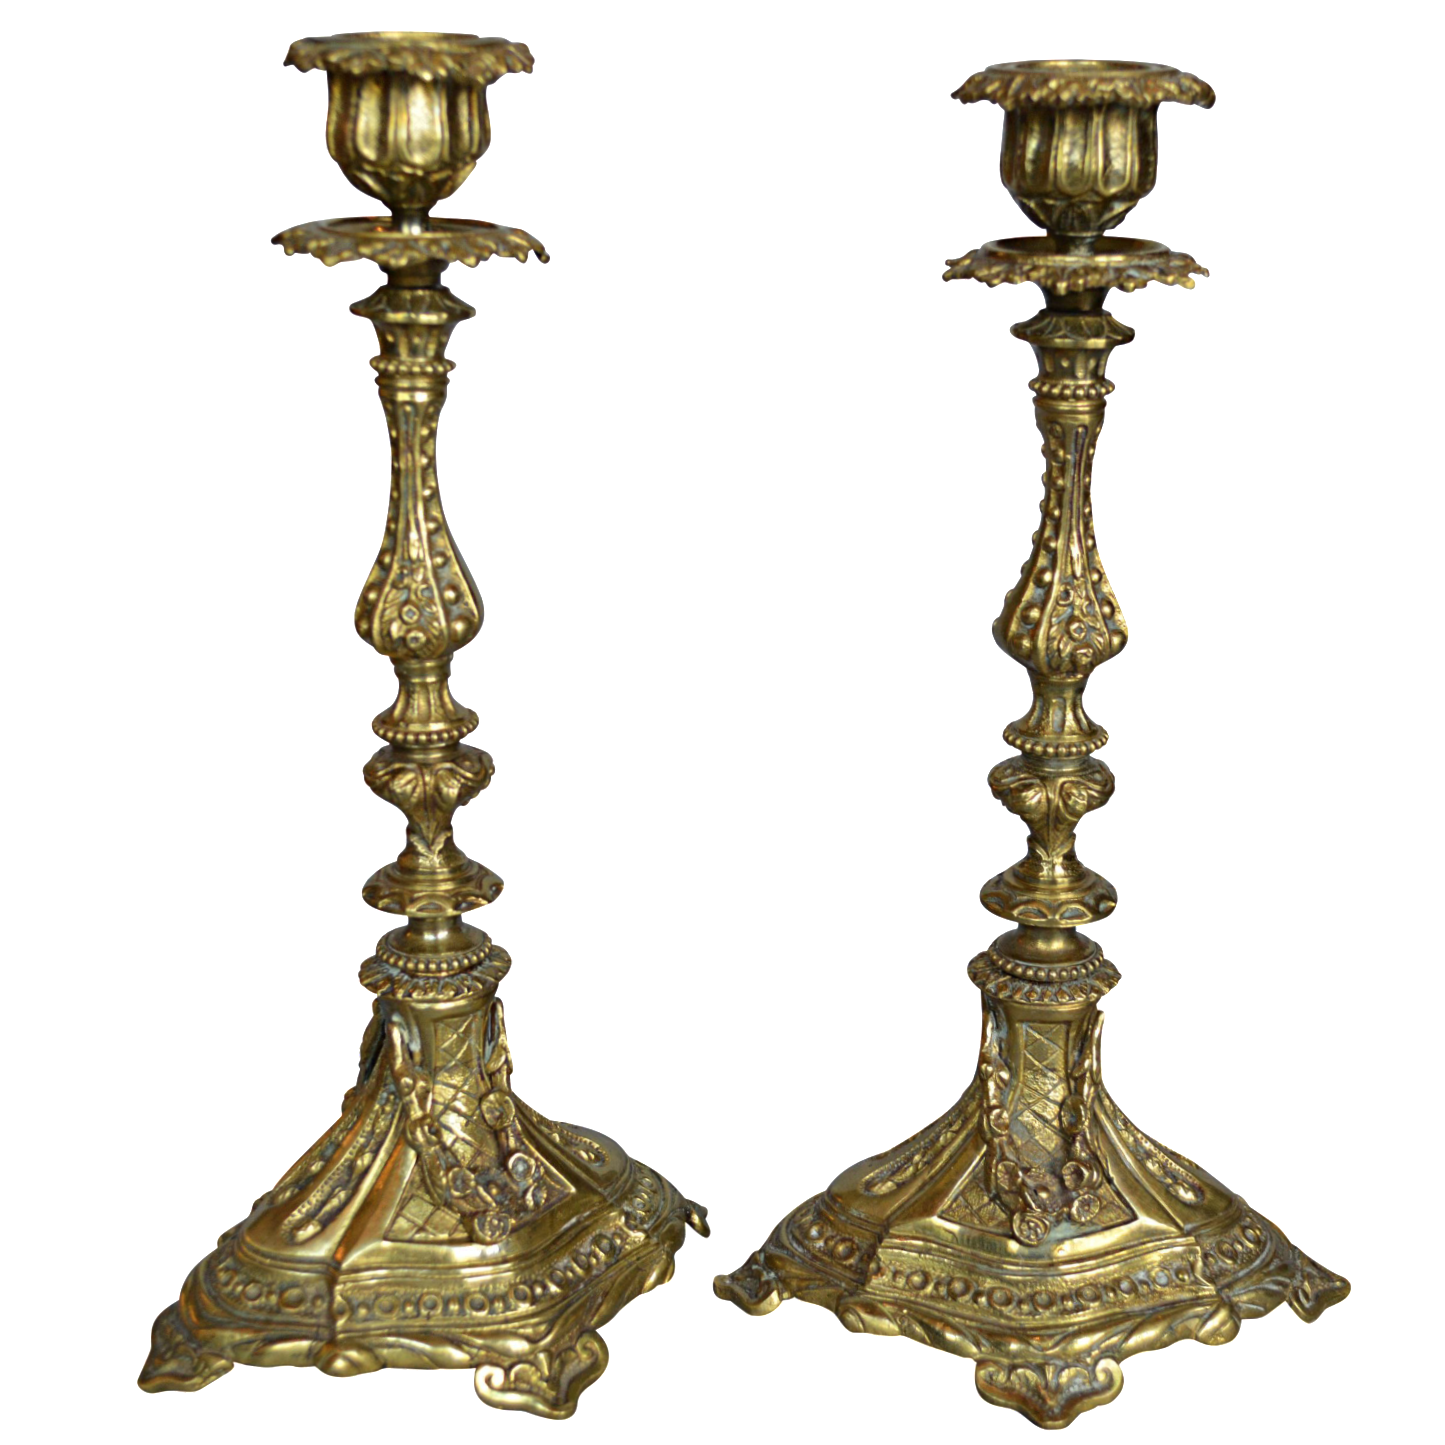 French Gilt Bronze Candlestick Holders A Pair Chairish : french gilt bronze candlestick holders a pair 9235 from www.chairish.com size 1445 x 1445 png 1108kB